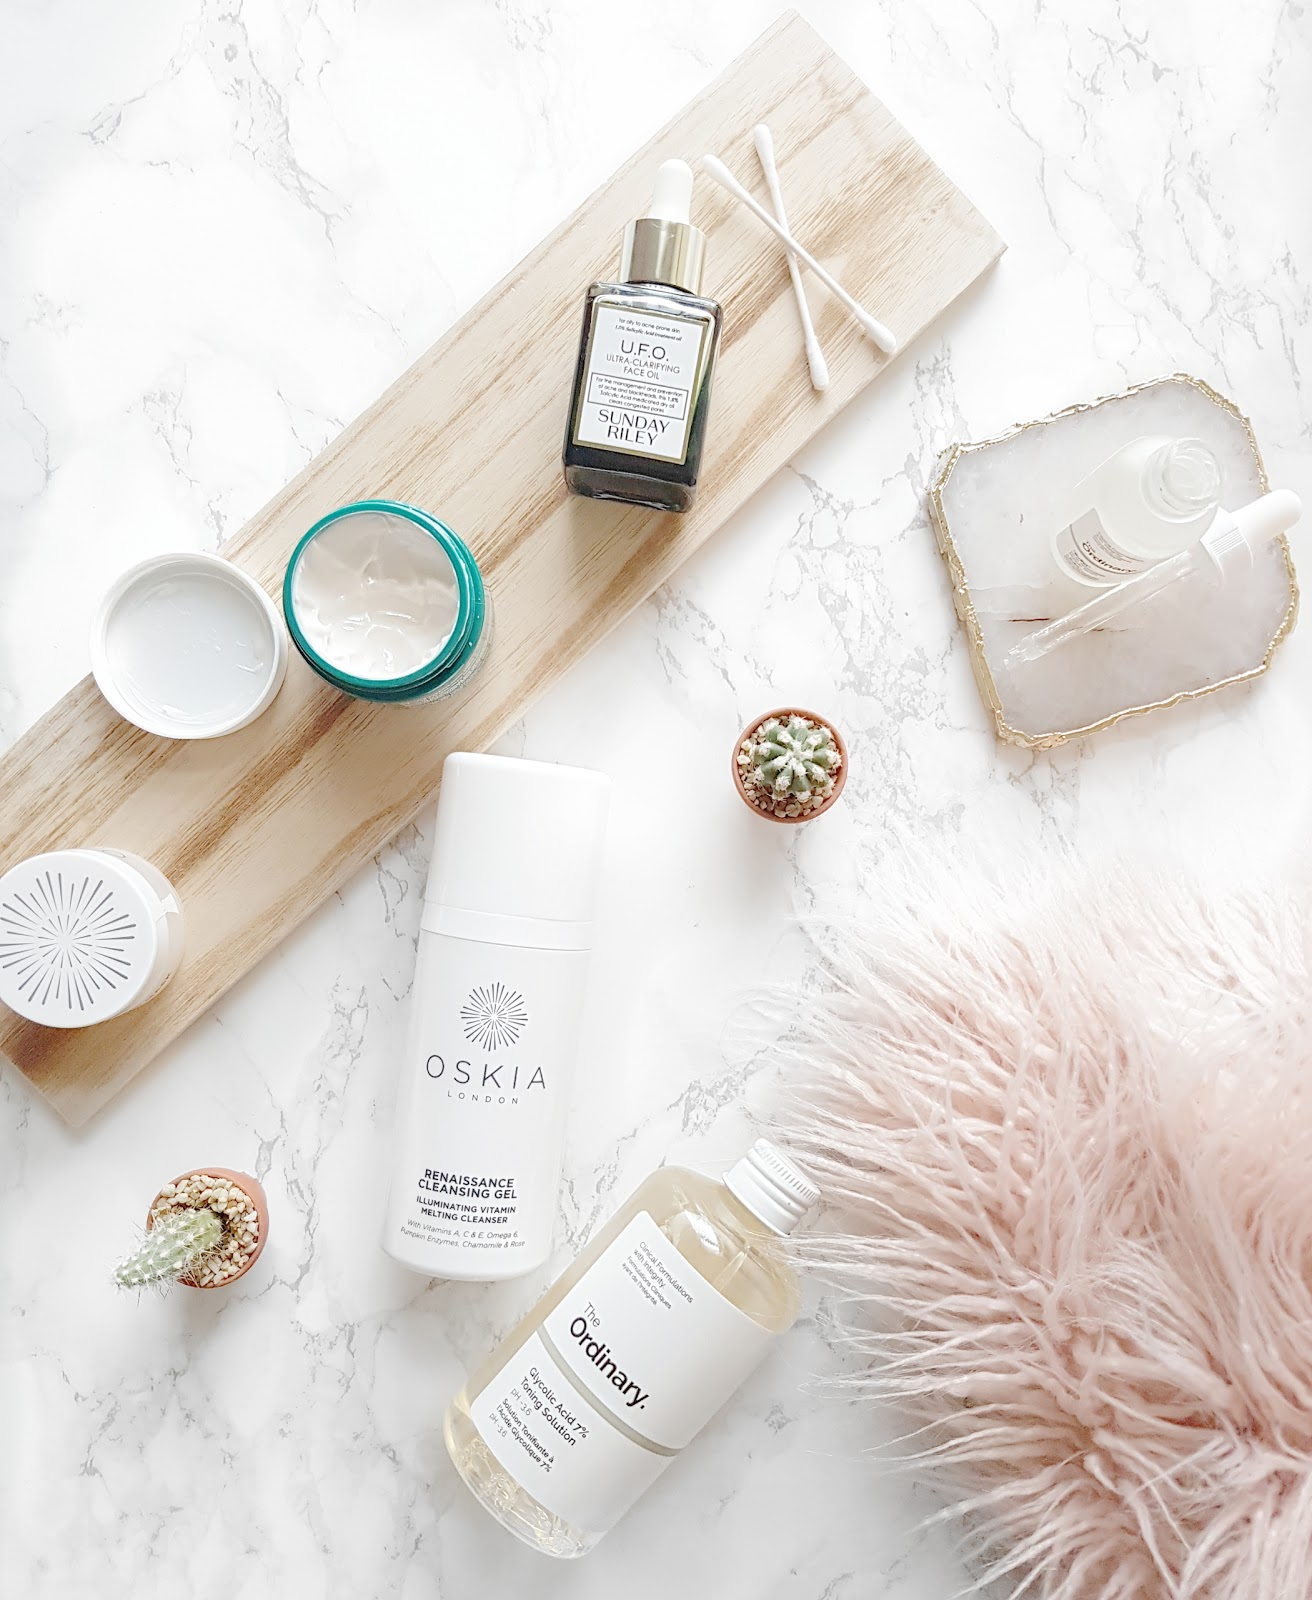 101 Skincare Ingredients Guide